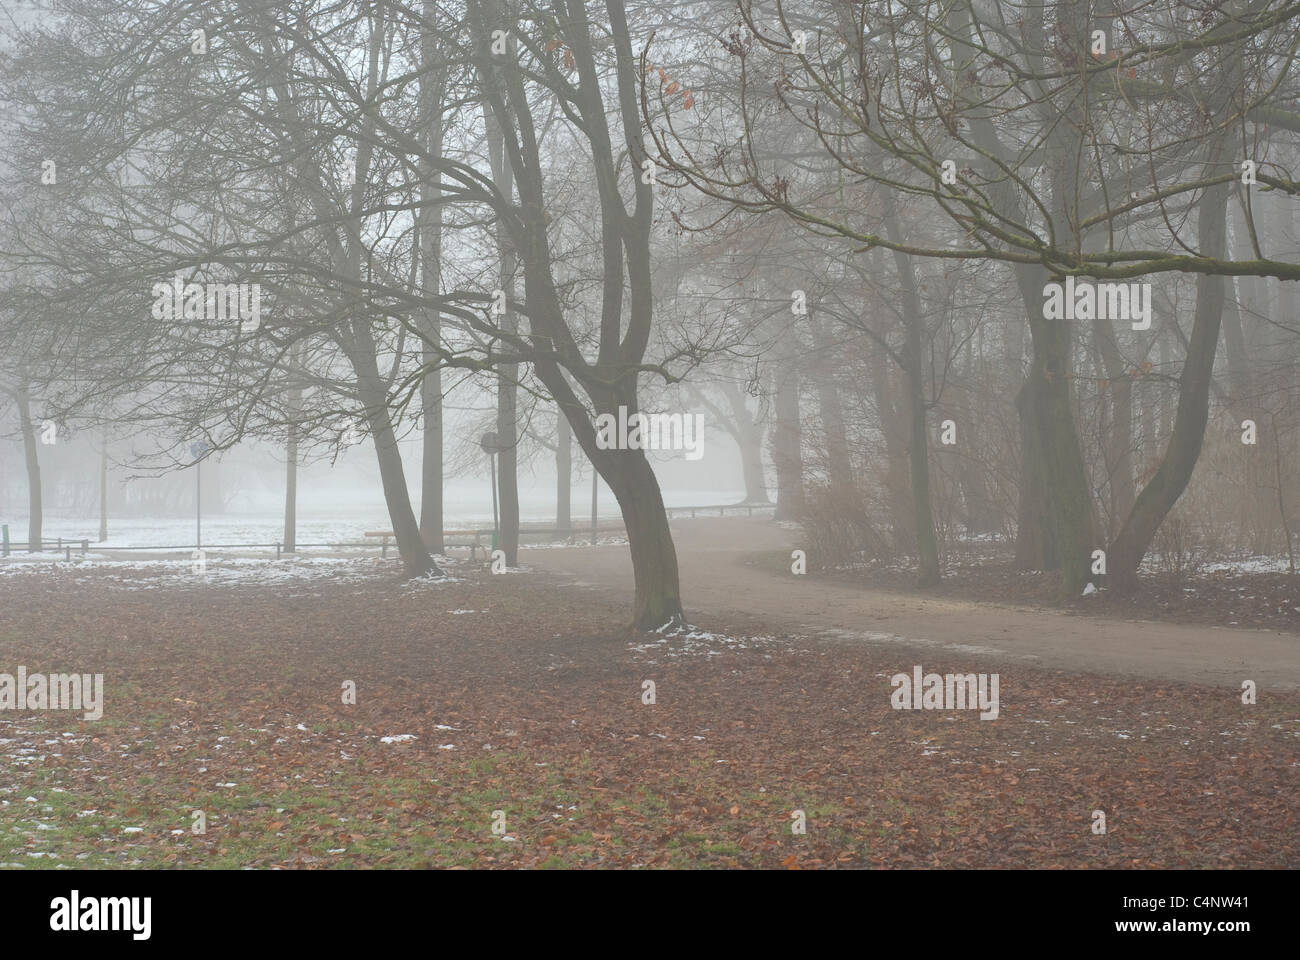 Foggy Lane on an Early Winter Day - Stock Image